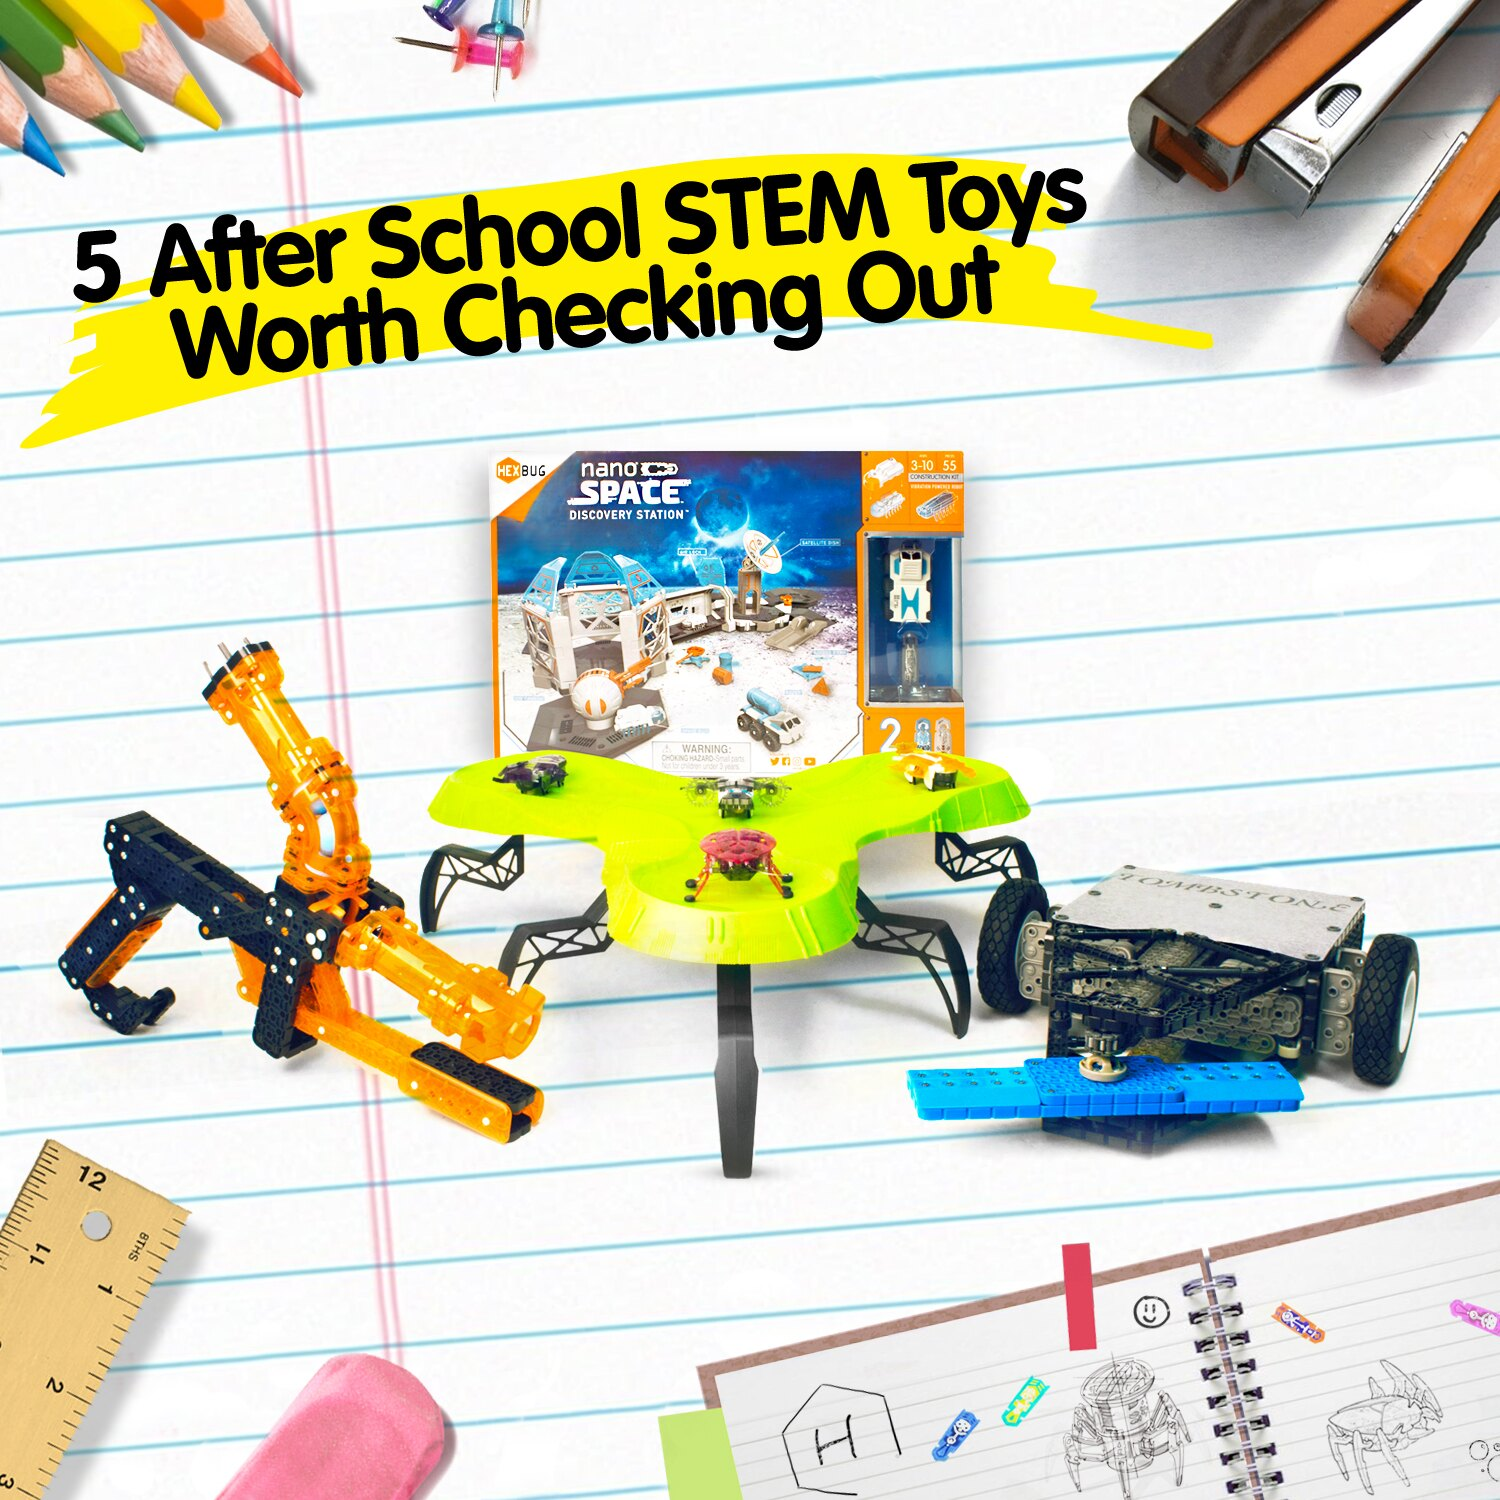 5 After School STEM Toys Worth Checking Out HEXHUB